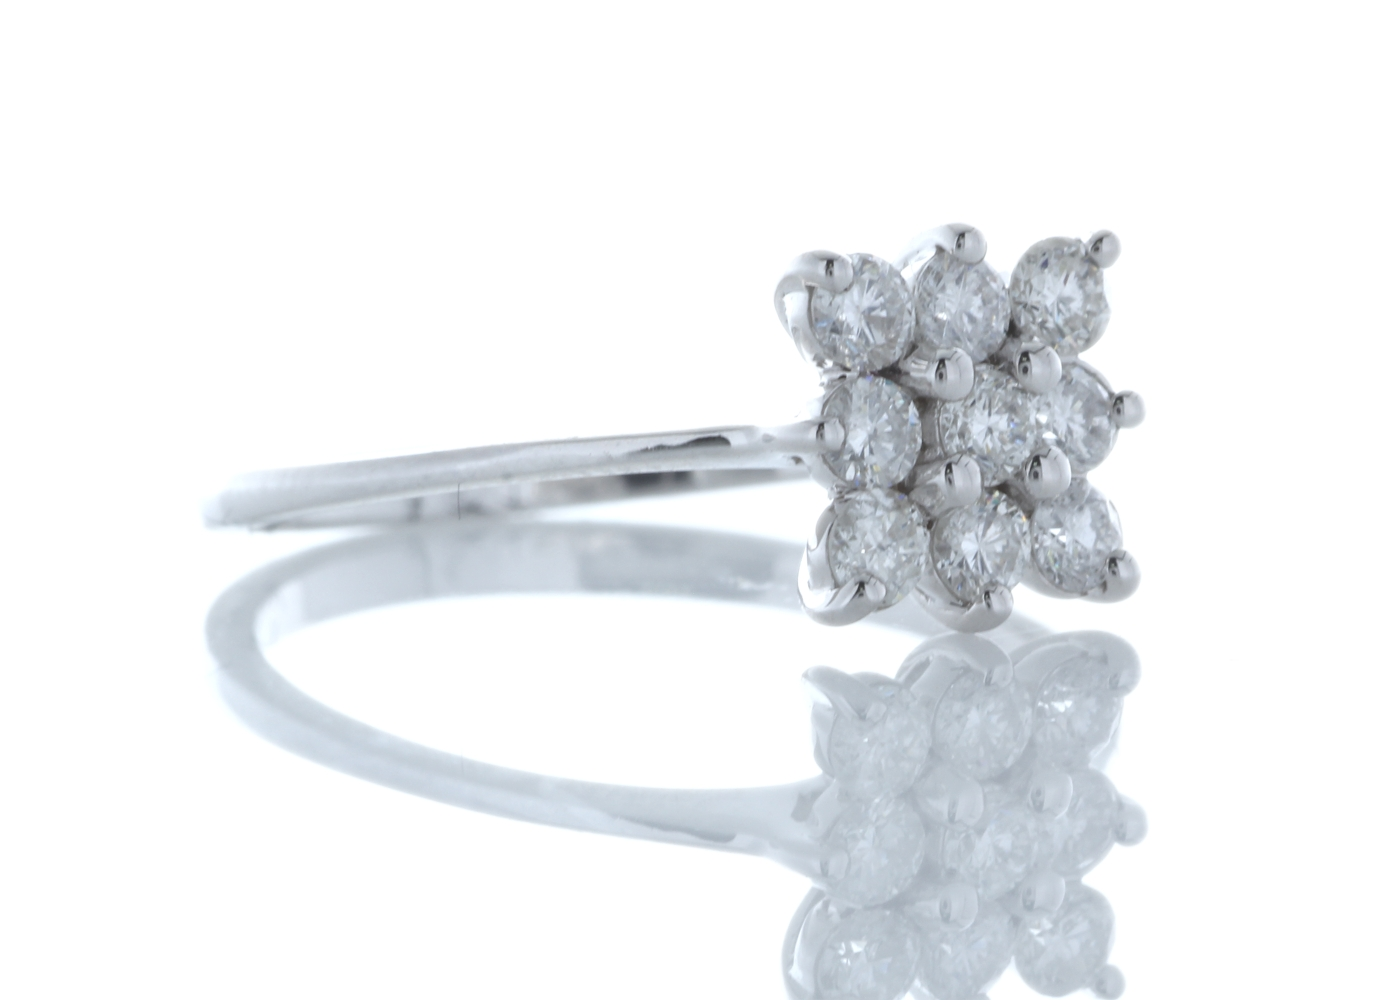 18ct White Gold Fancy Cluster Diamond Ring 0.45 Carats - Image 4 of 4